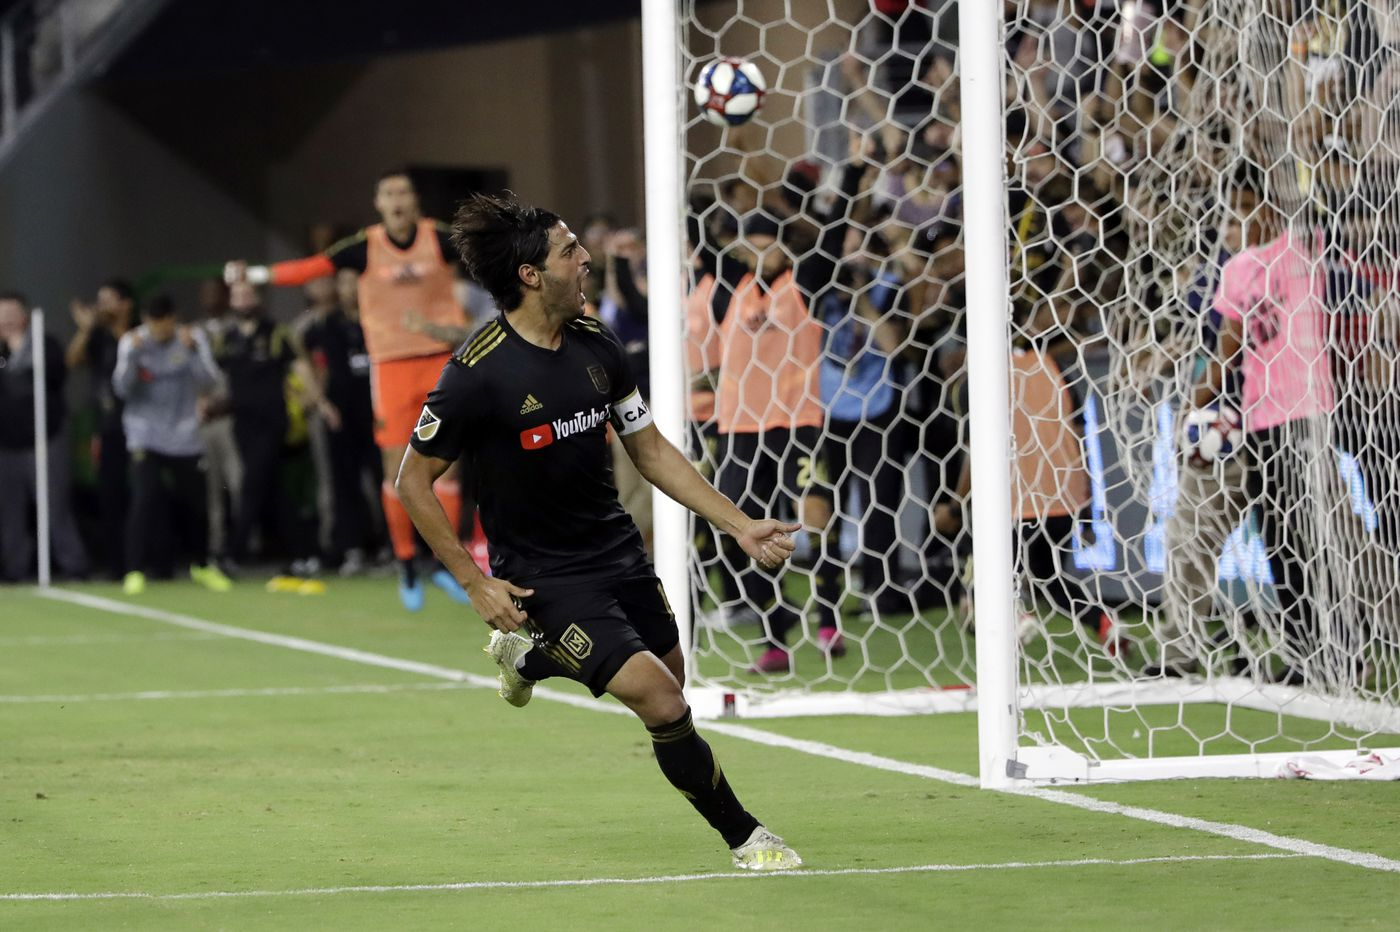 MLS playoffs: Schedule, betting odds, players to watch and picks for the conference semifinals